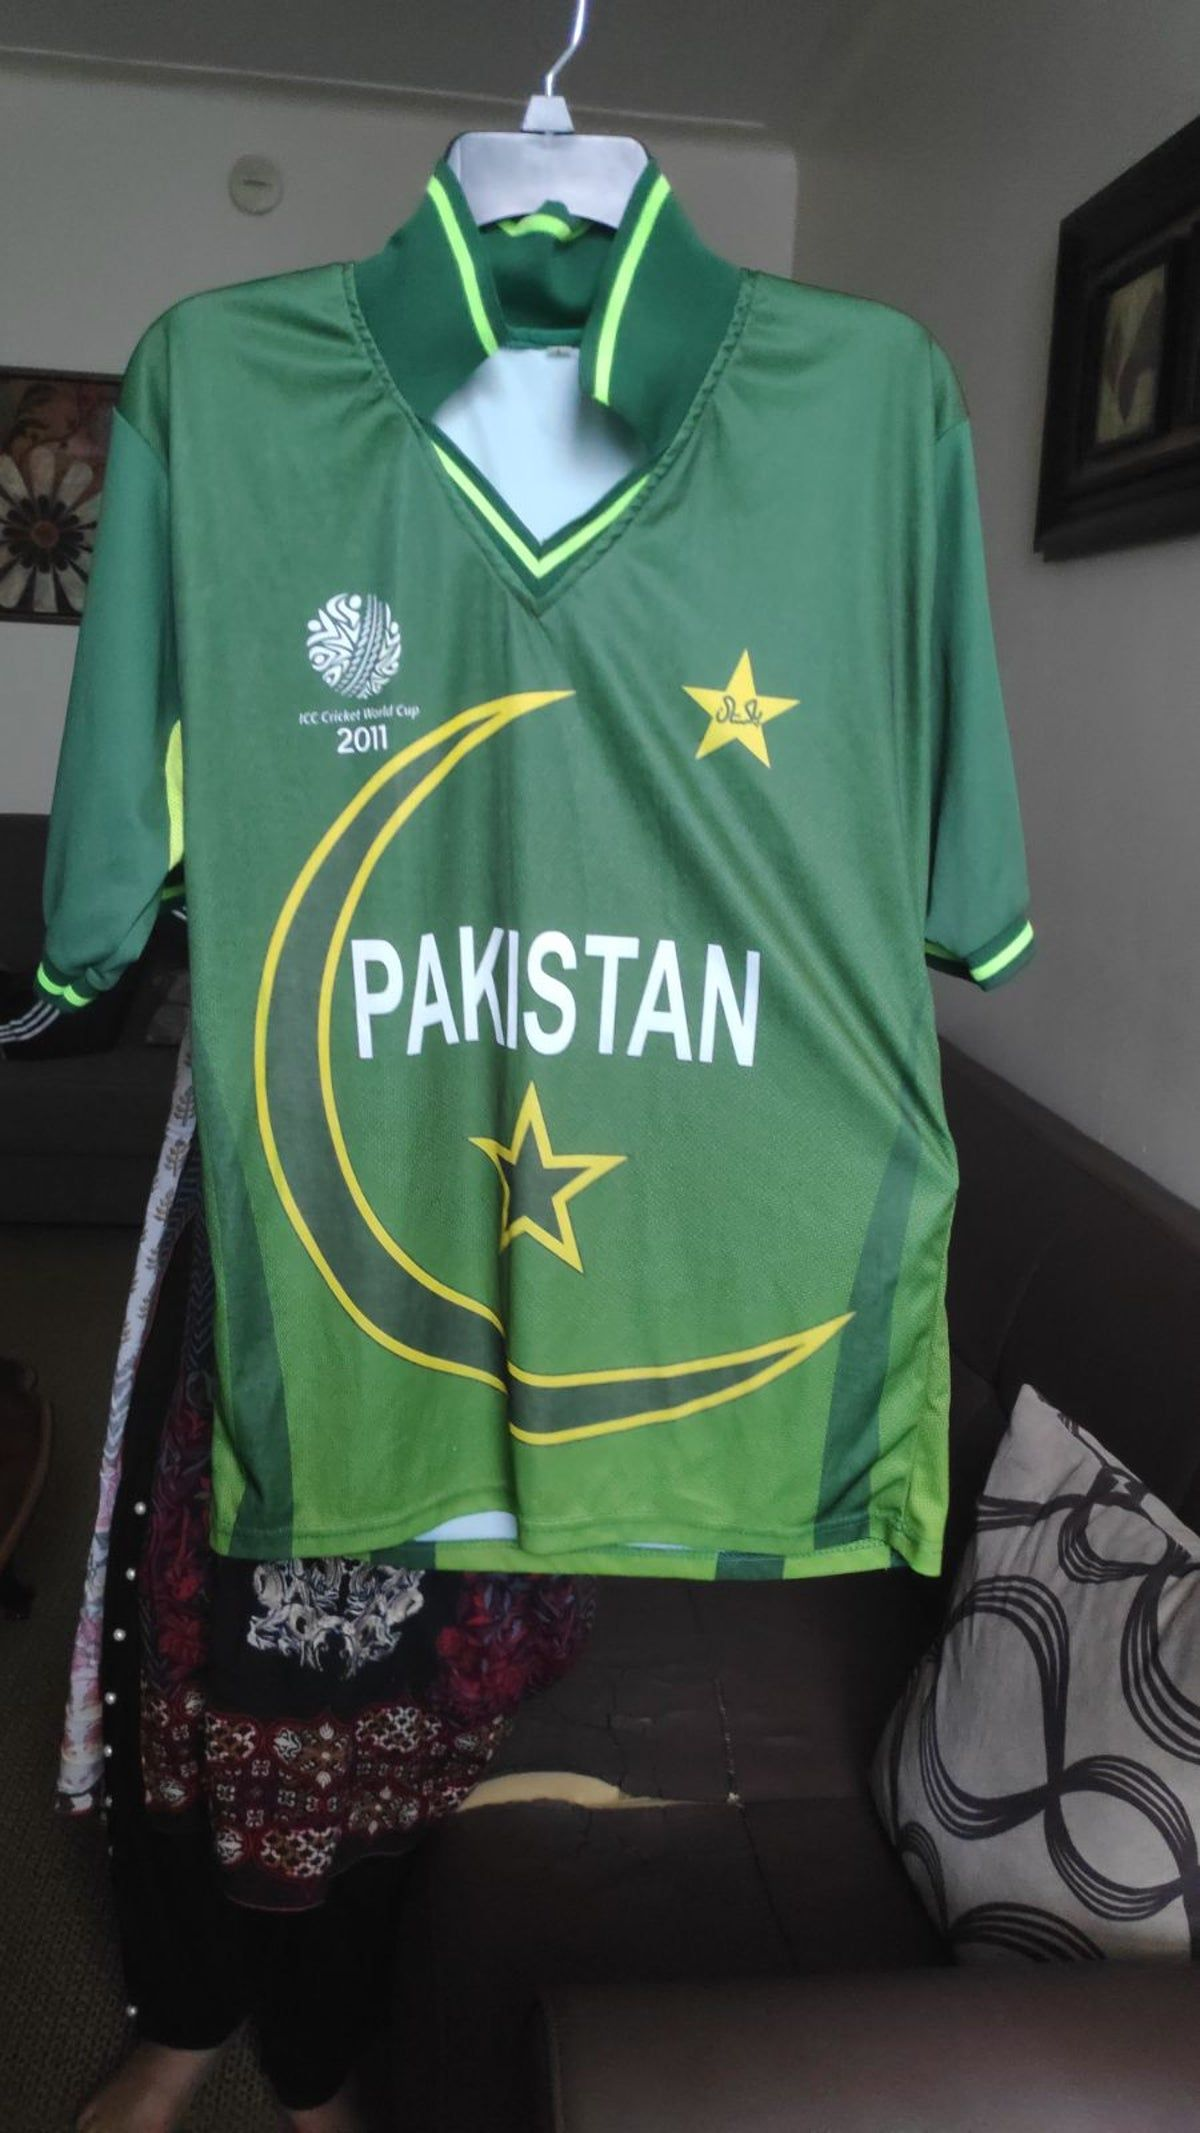 Pakistan Shirt Cricket World Cup 2011 Cricket World Cup Shirts Pakistan